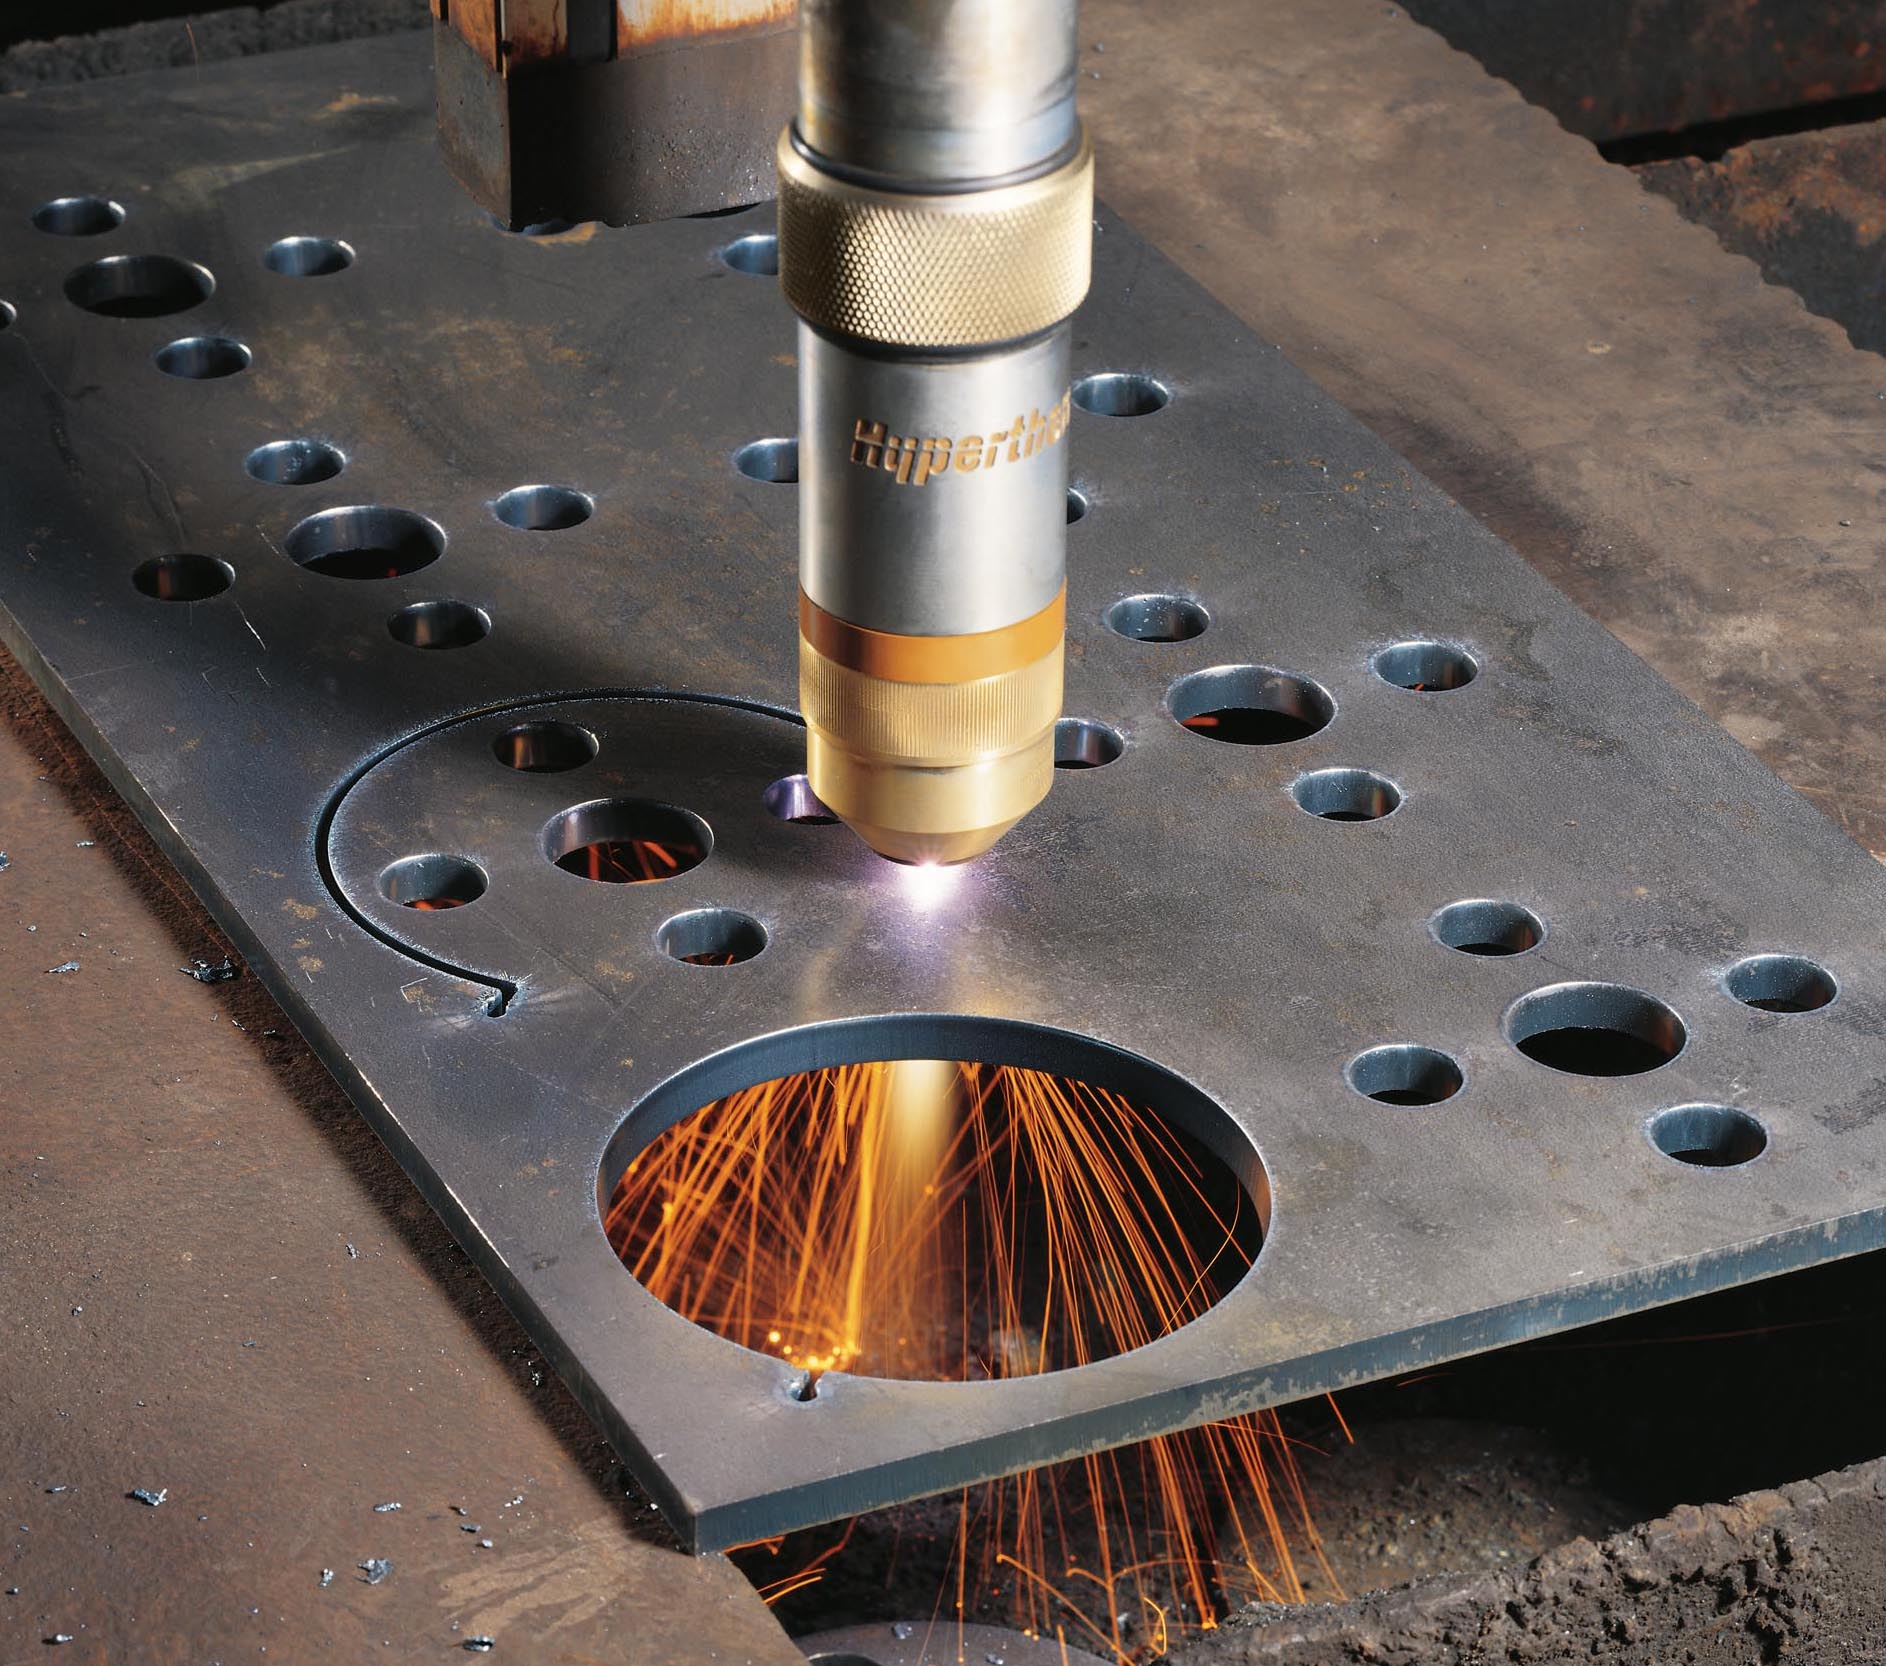 Why Plasma Cutting Is a Better Choice Over Laser or Water